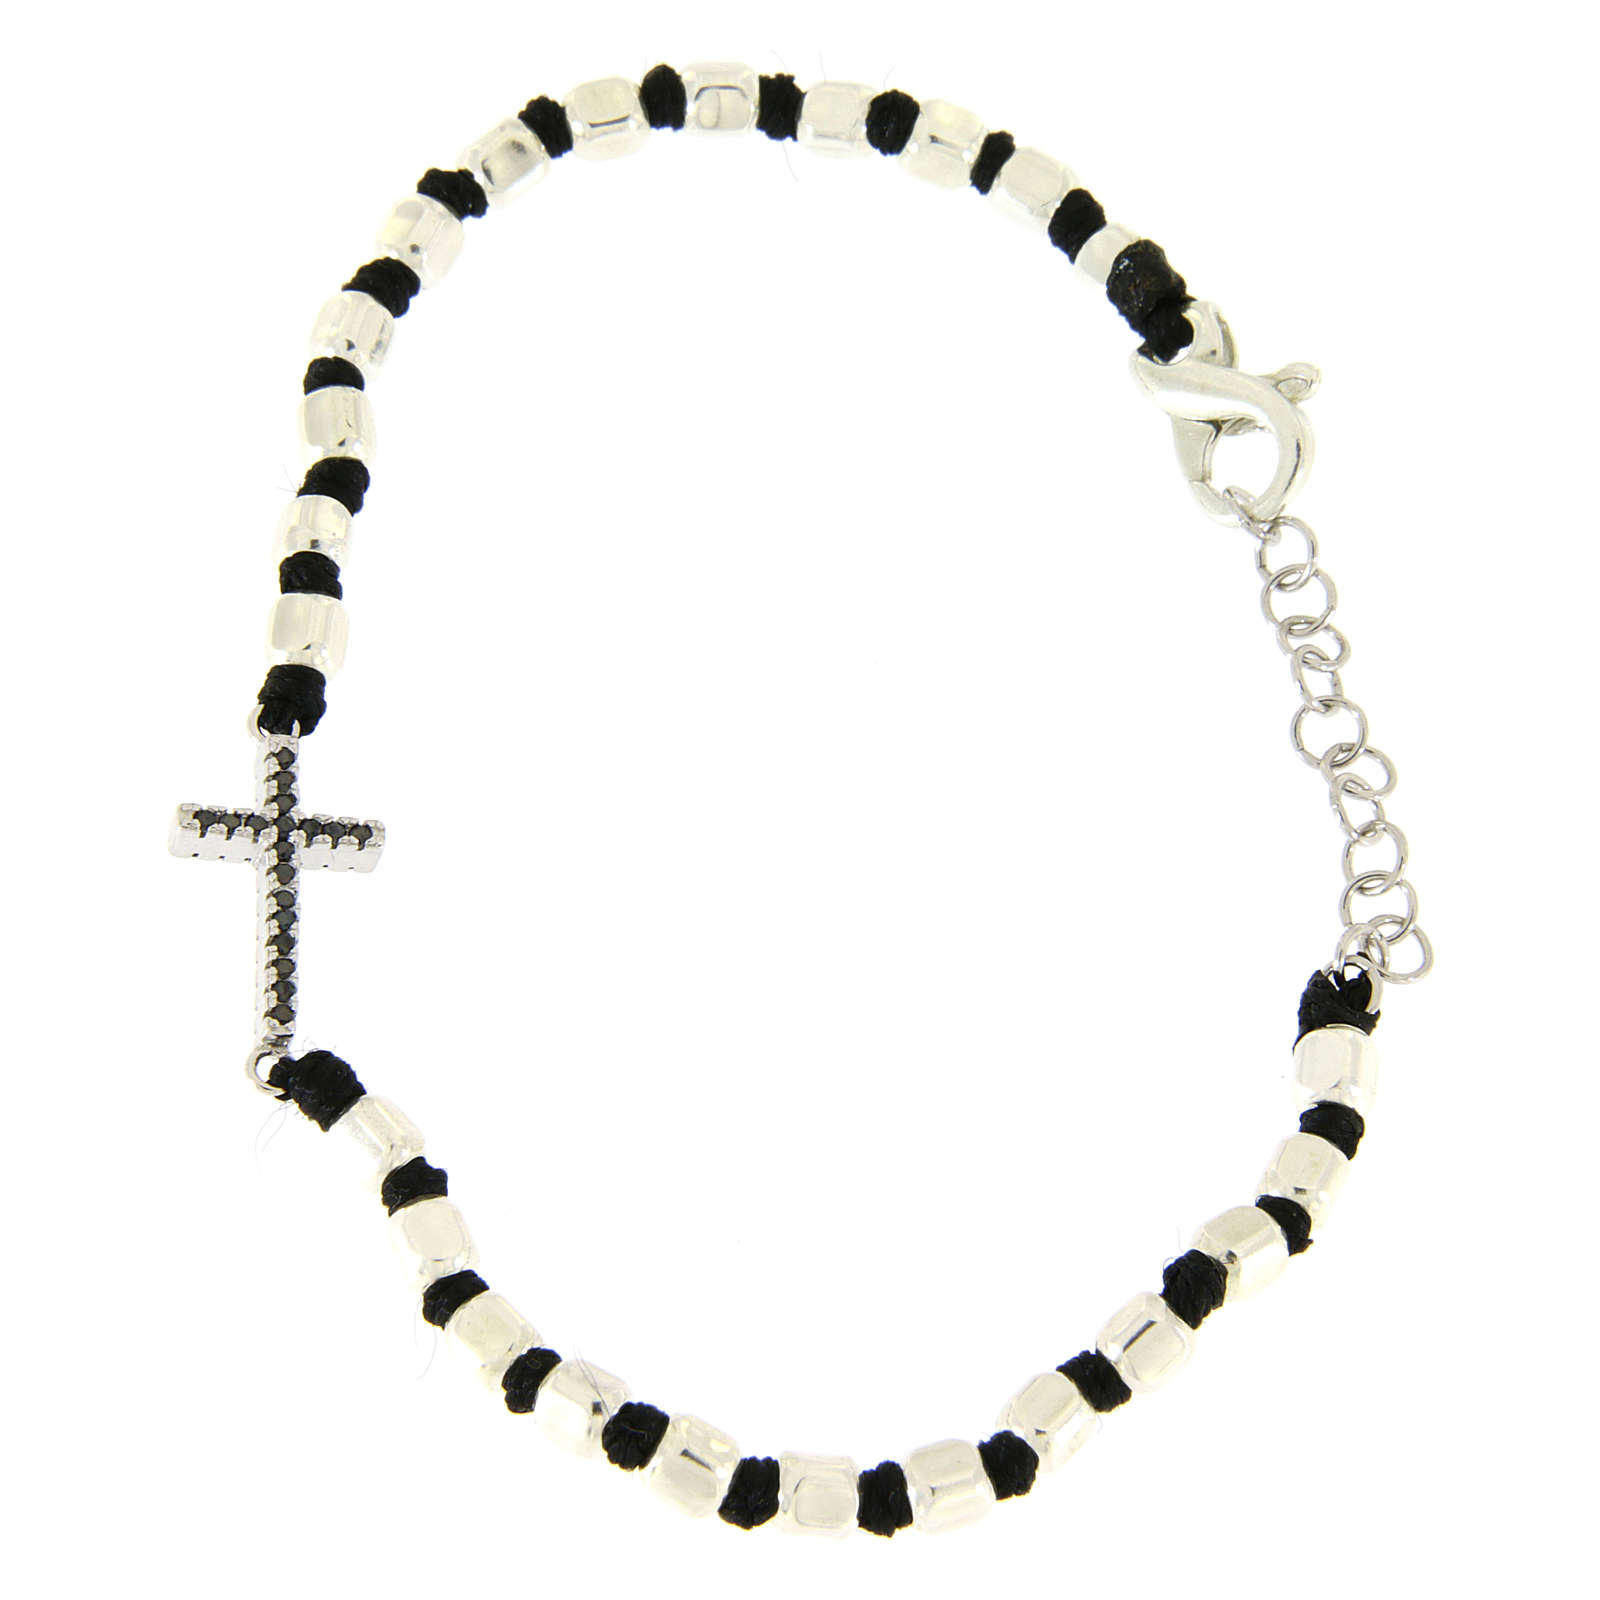 Bracelet with multifaceted silver beads sized 2 mm on a black cotton cord and a black zirconate cross 4